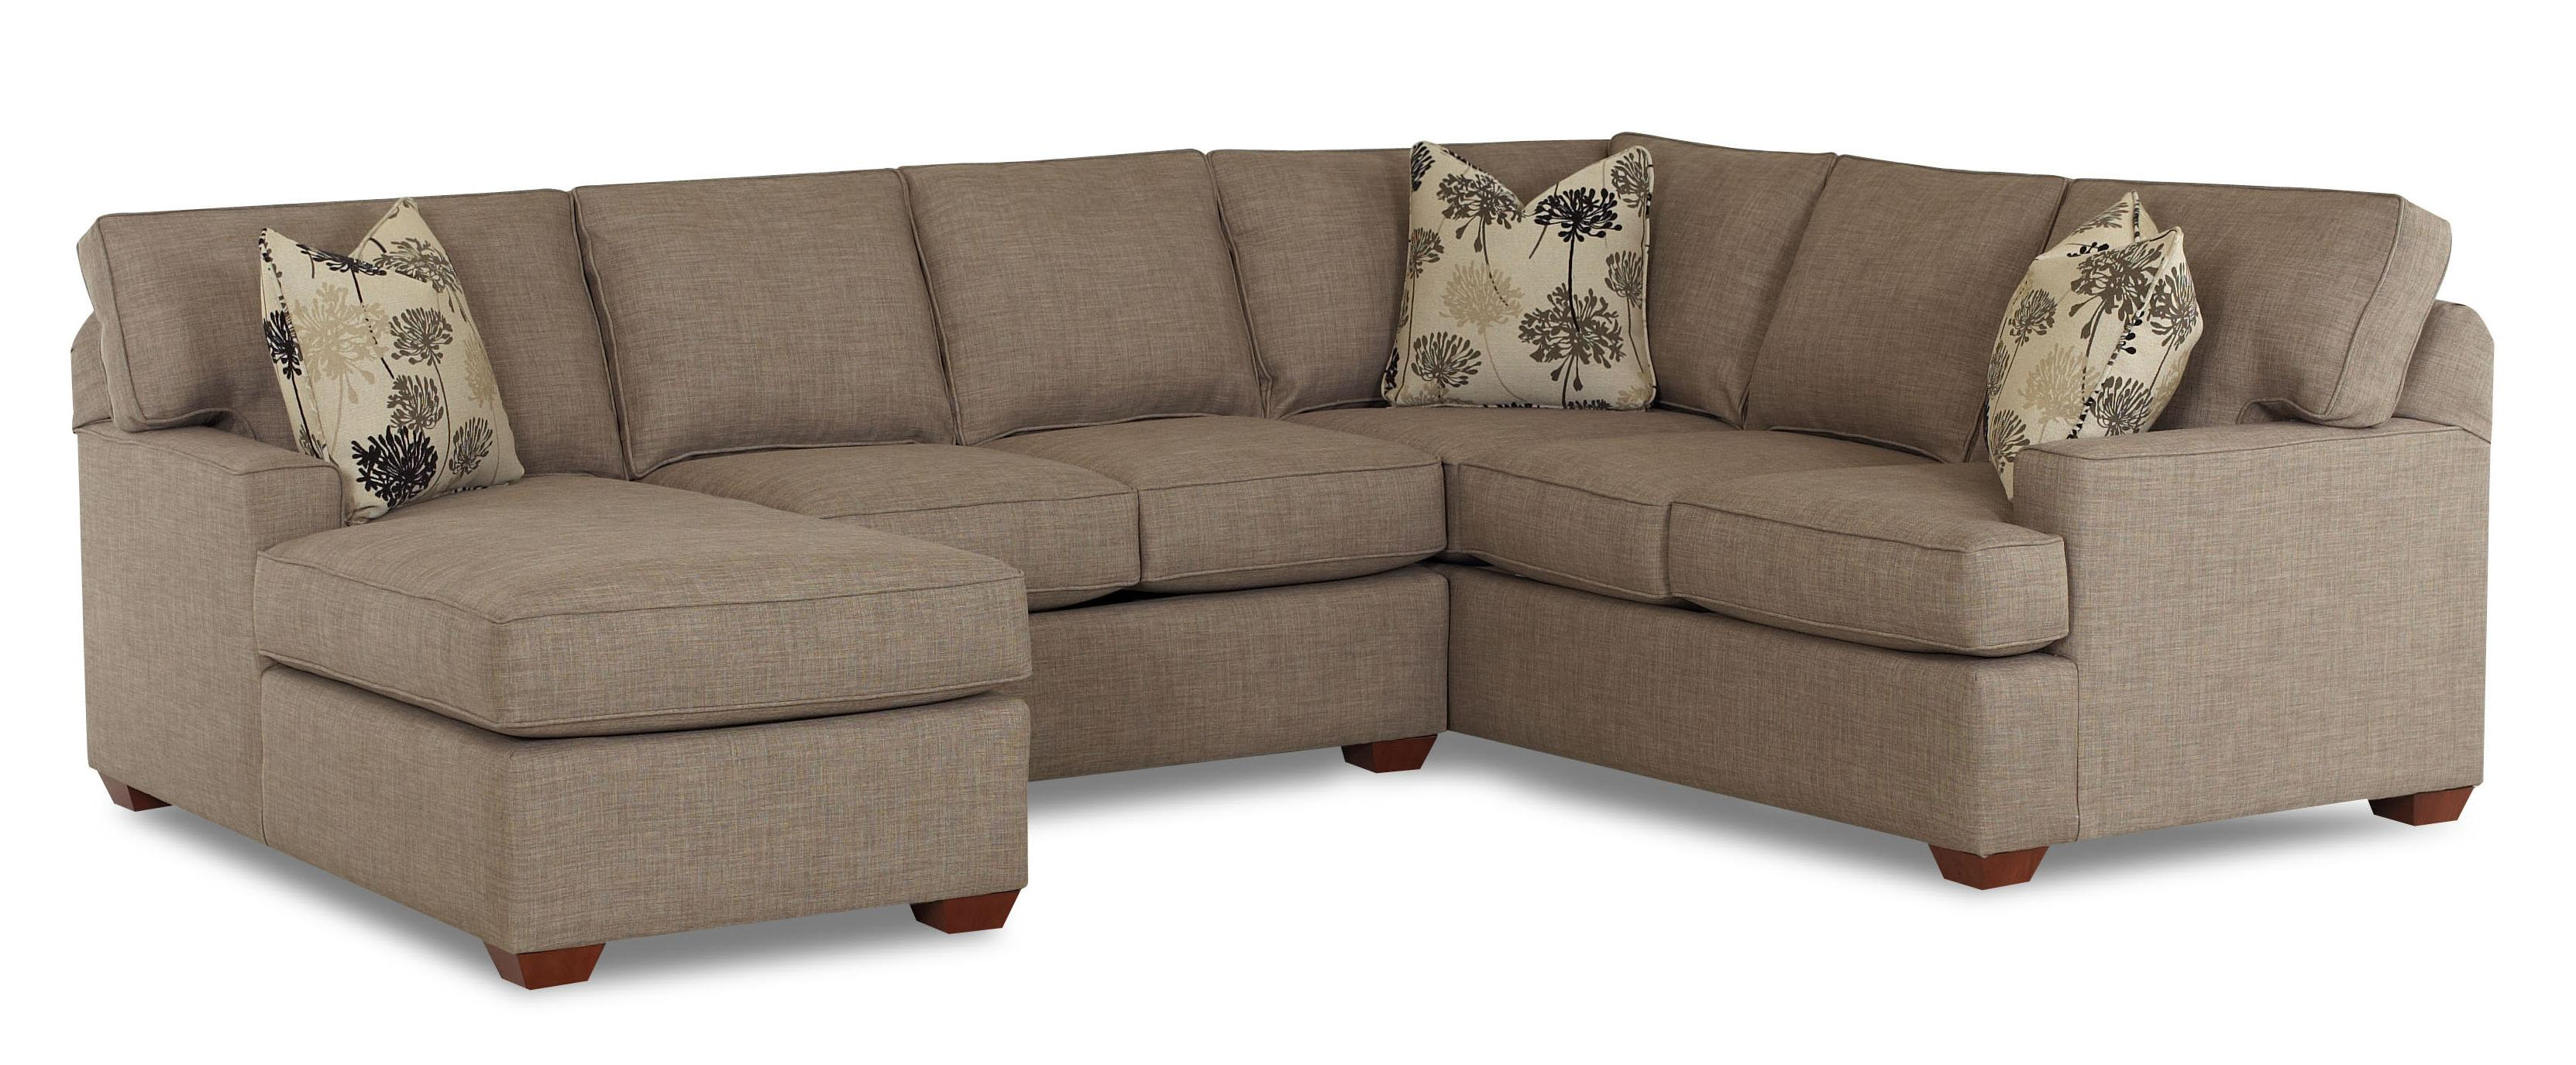 Pantego 3 Piece Sectional Sofa with LAF Chaise by Klaussner at Northeast Factory Direct